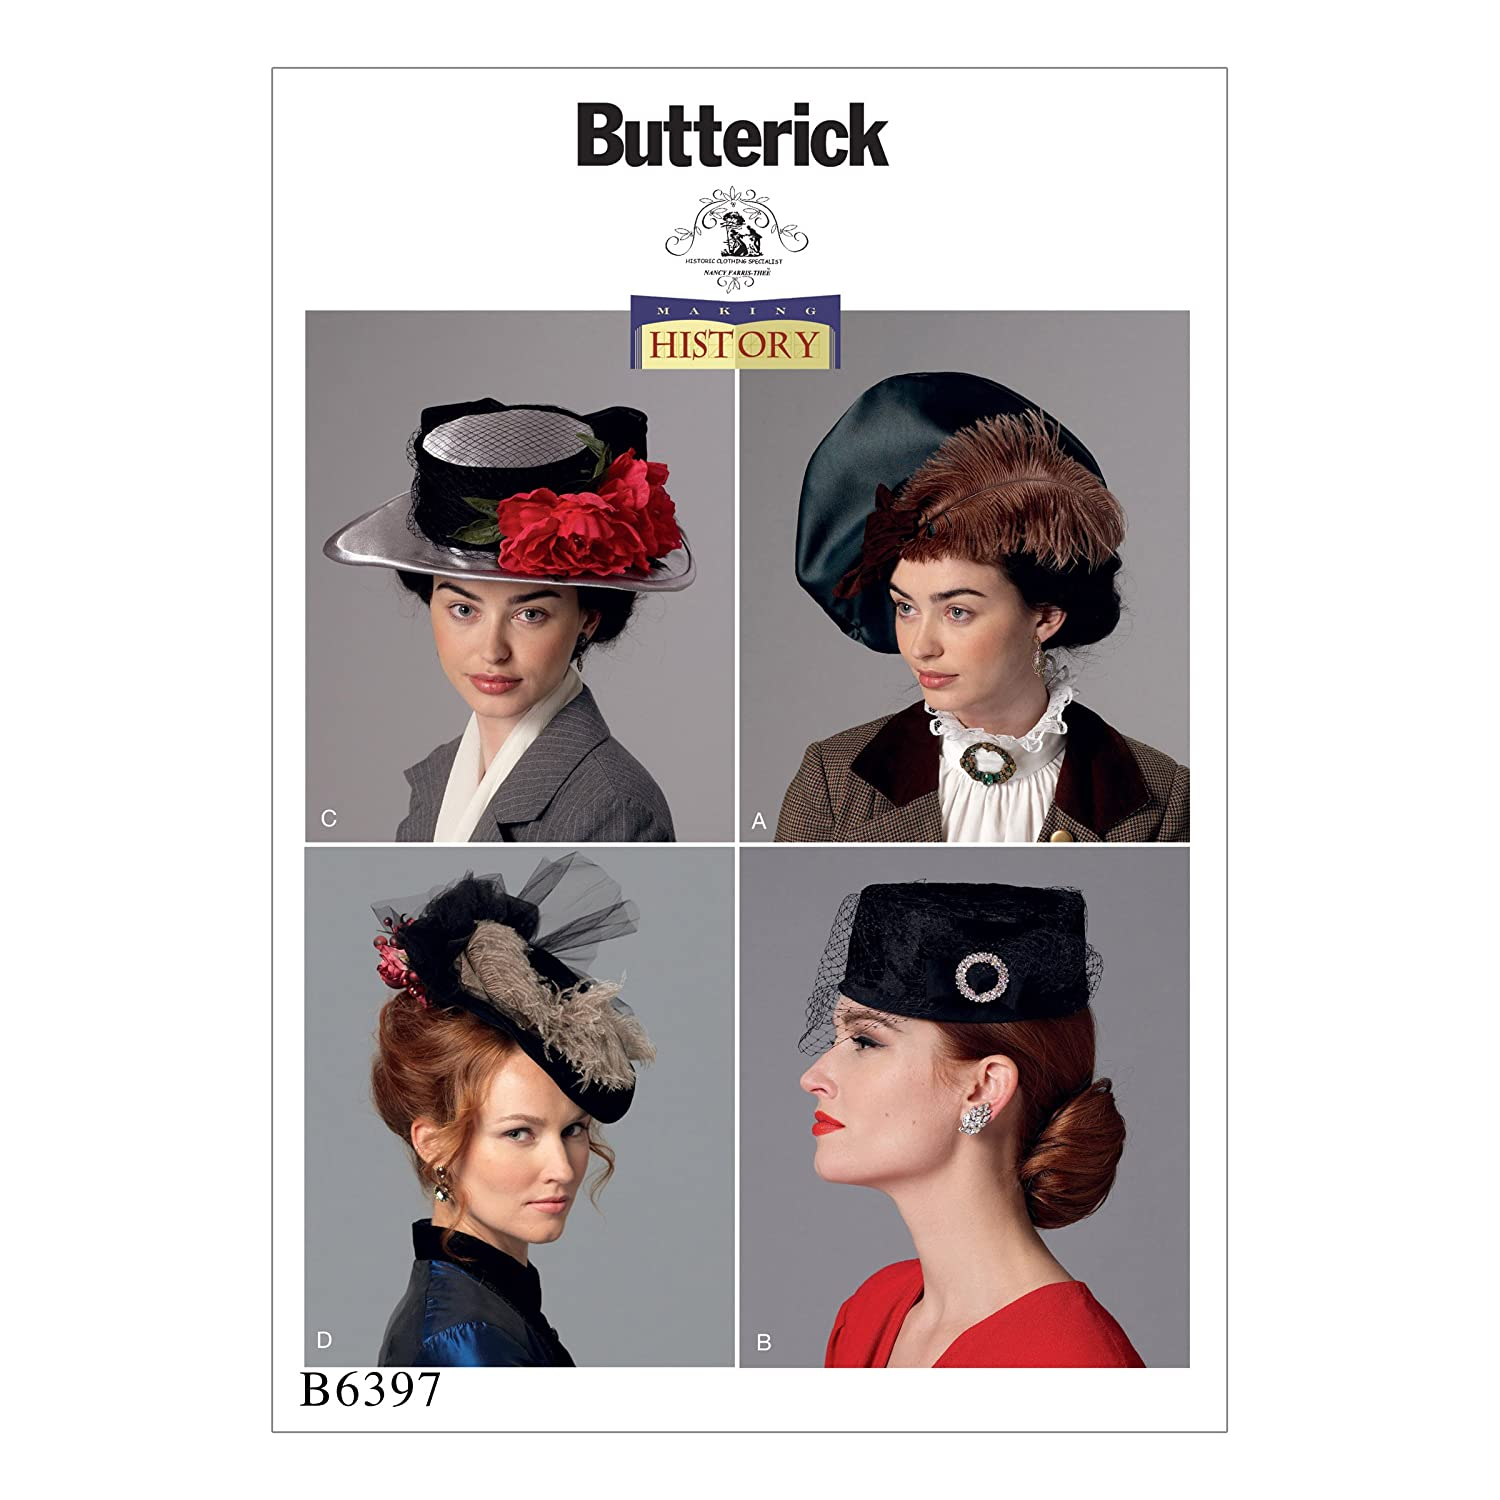 1950s Women's Hat Styles & History Butterick Patterns 6397 OSMisses Hats Tissue Multi-Colour 17 x 0.5 x 22 cm �7.52 AT vintagedancer.com